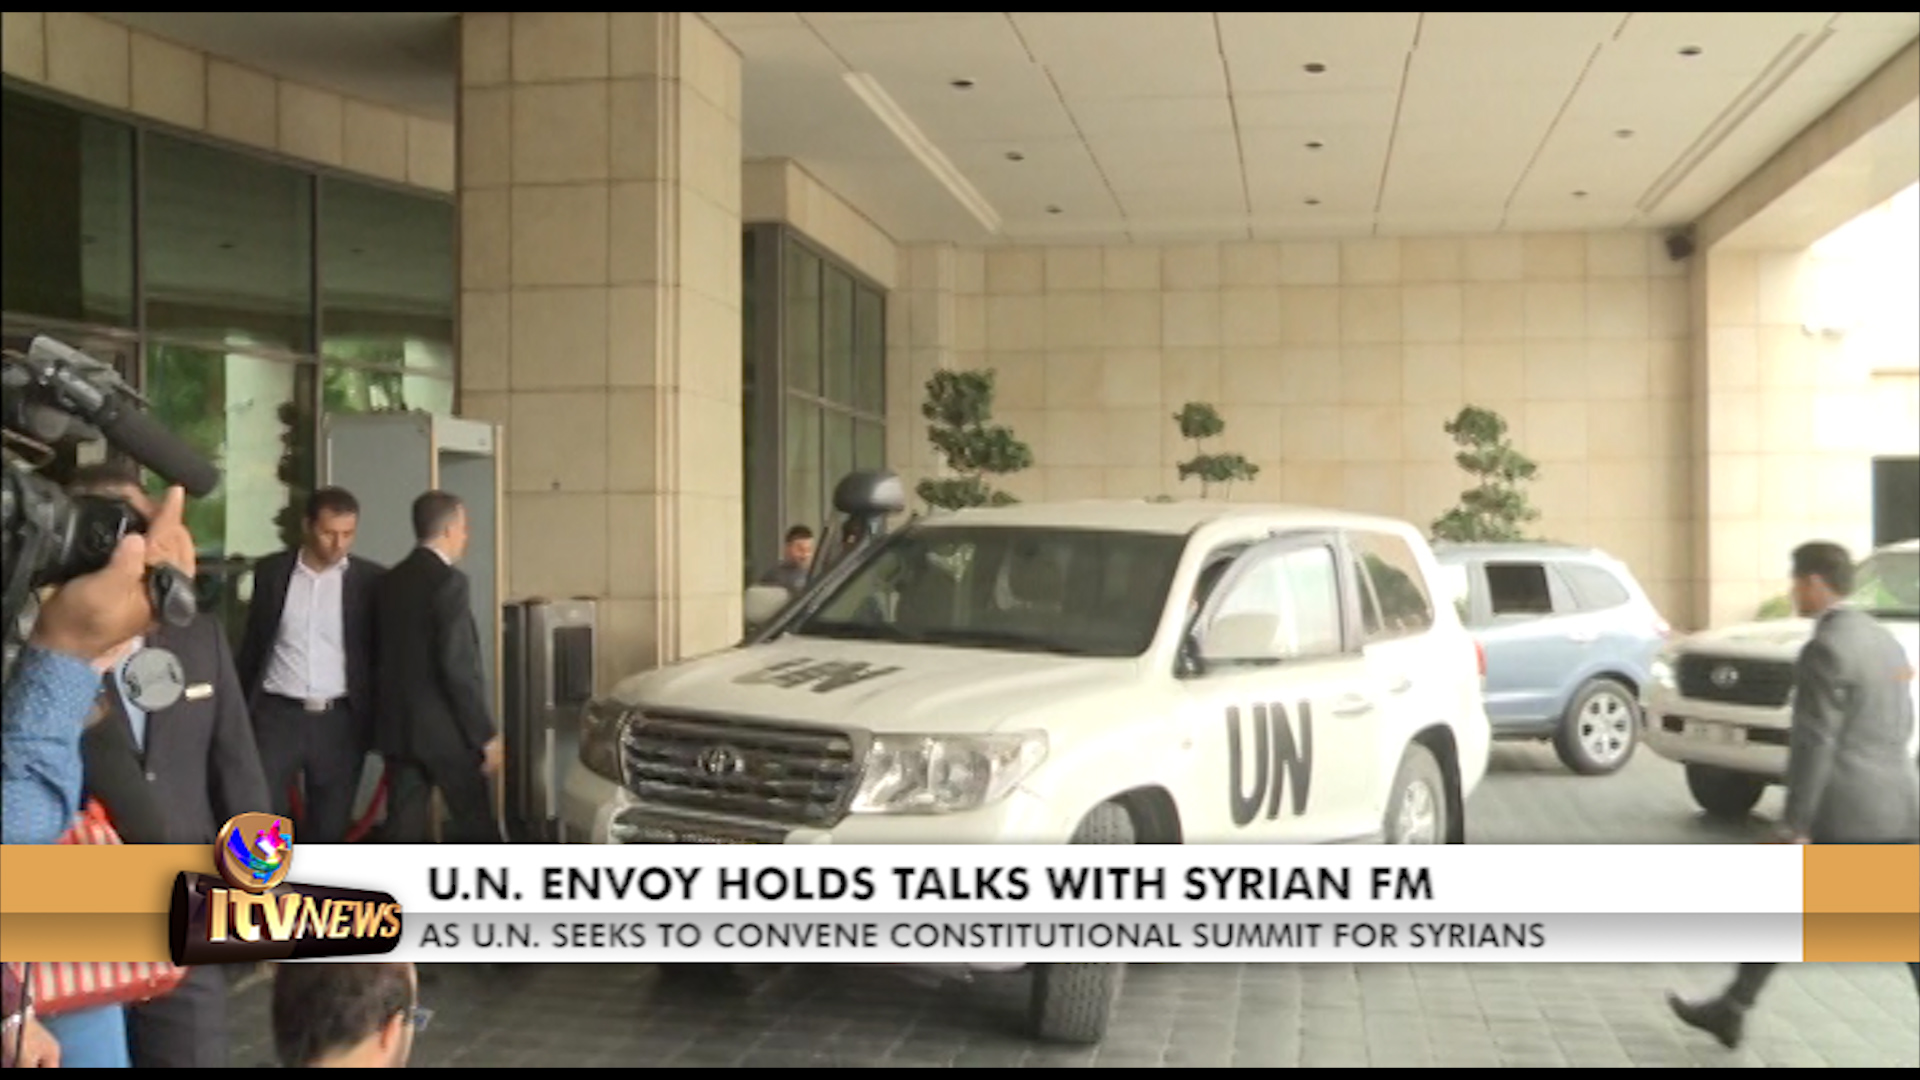 ITV Networks Channel 347 - U N  ENVOY HOLDS TALKS WITH SYRIAN